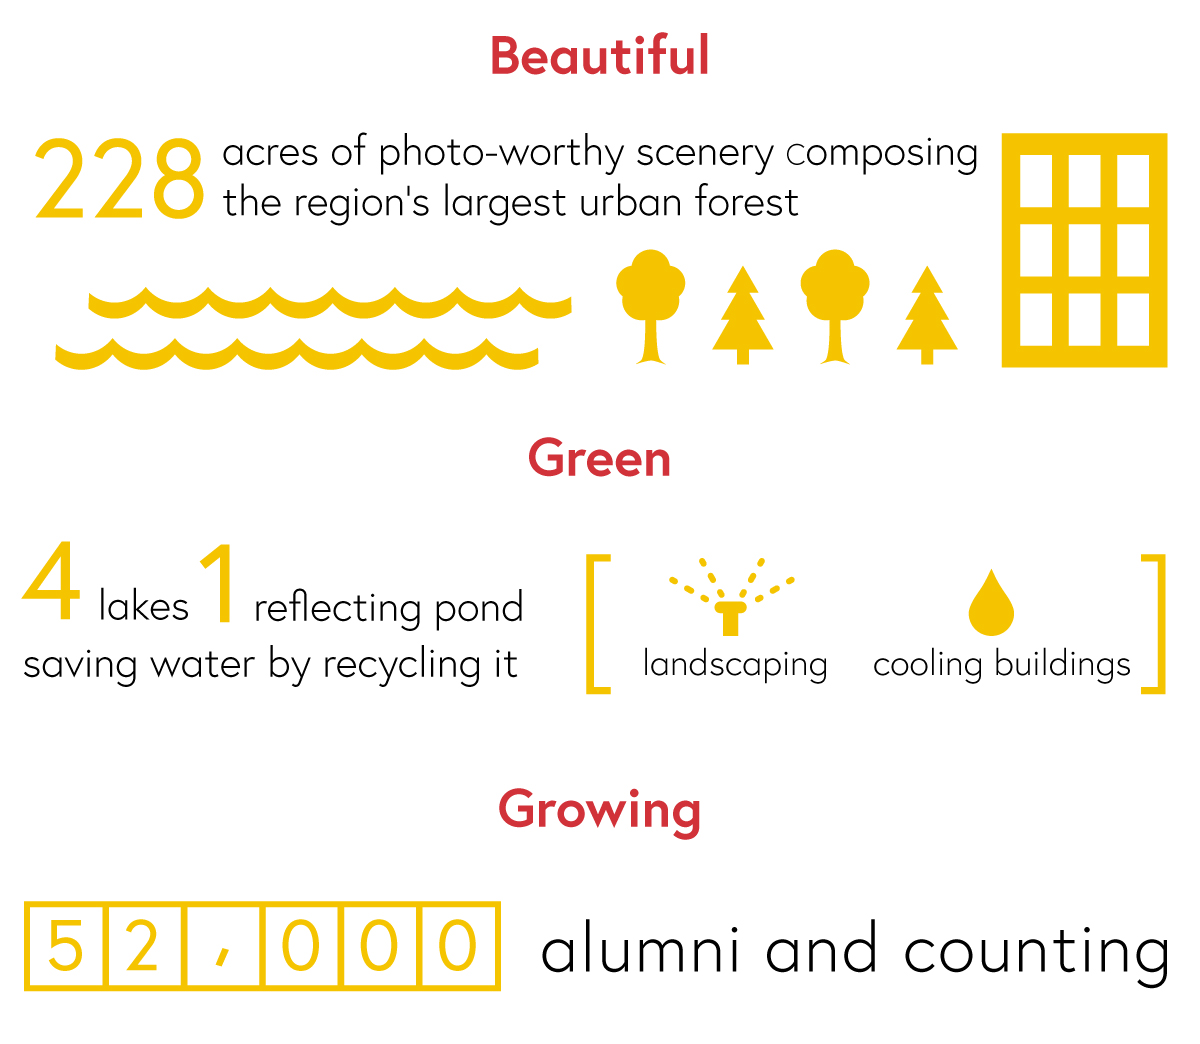 Beautiful: 228 acres of photo-worthy scenery composing the region's largest urban forest.<br />